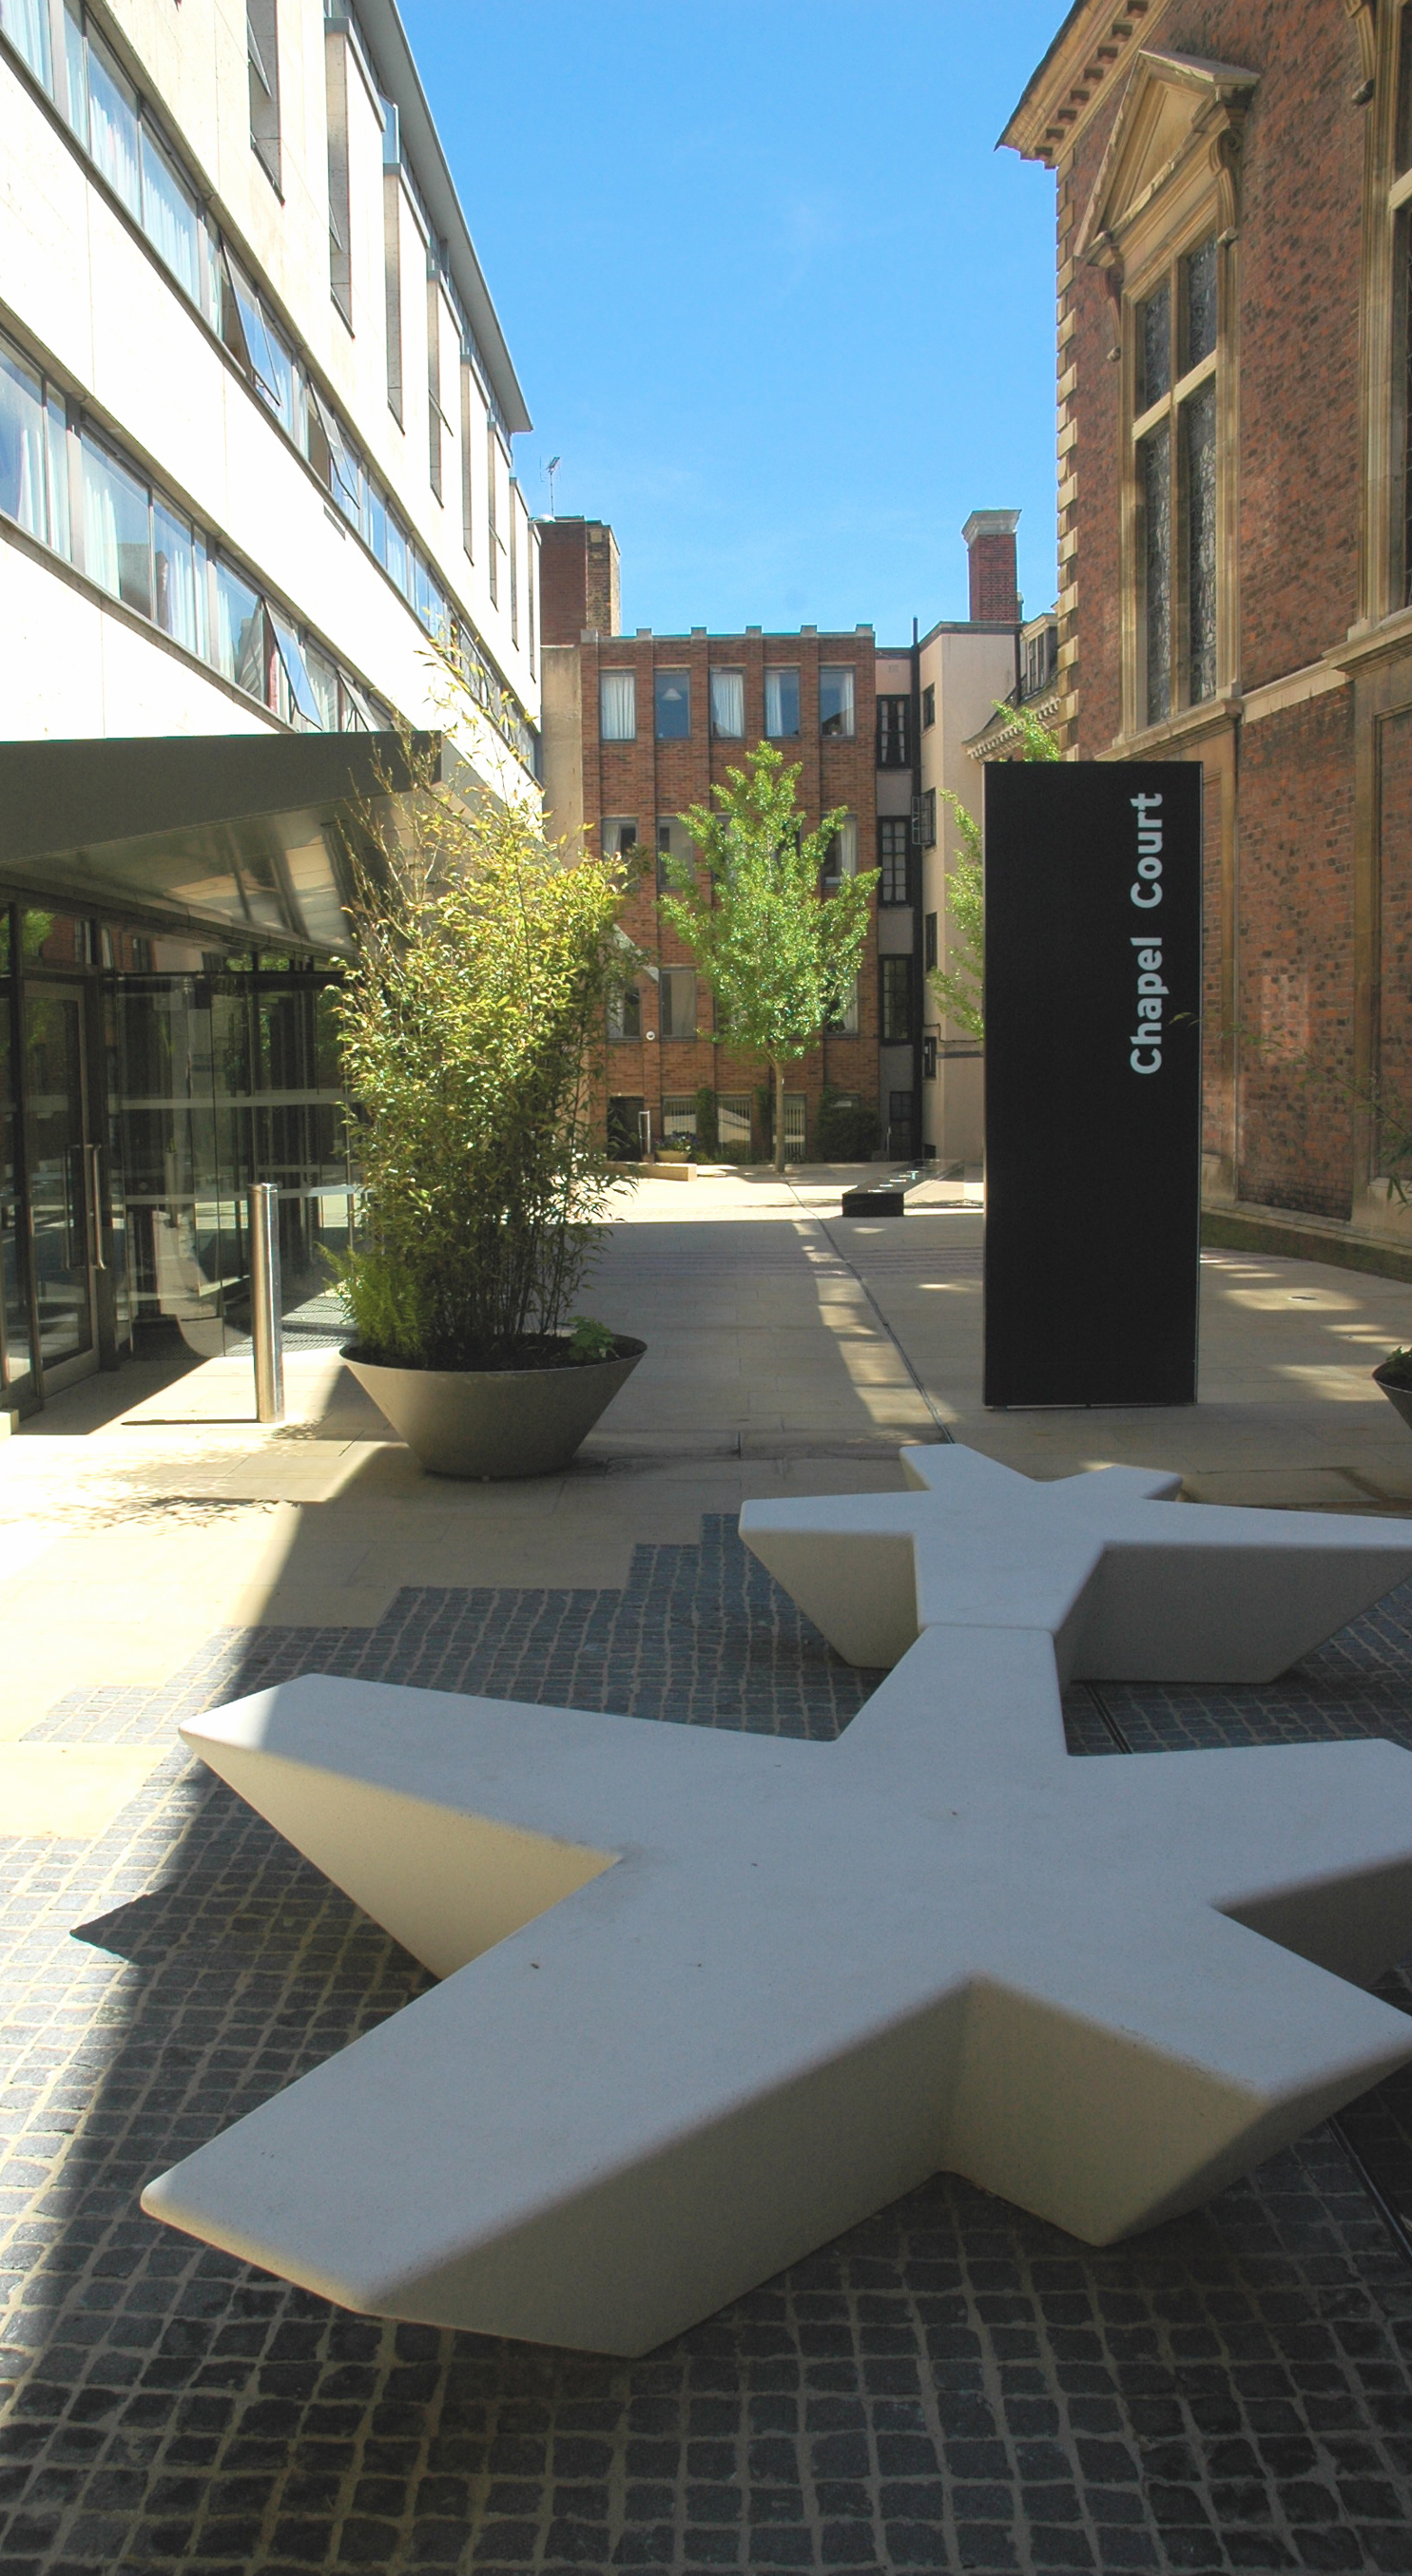 Cambridge Design and Construction Award 2013 Winners Announced